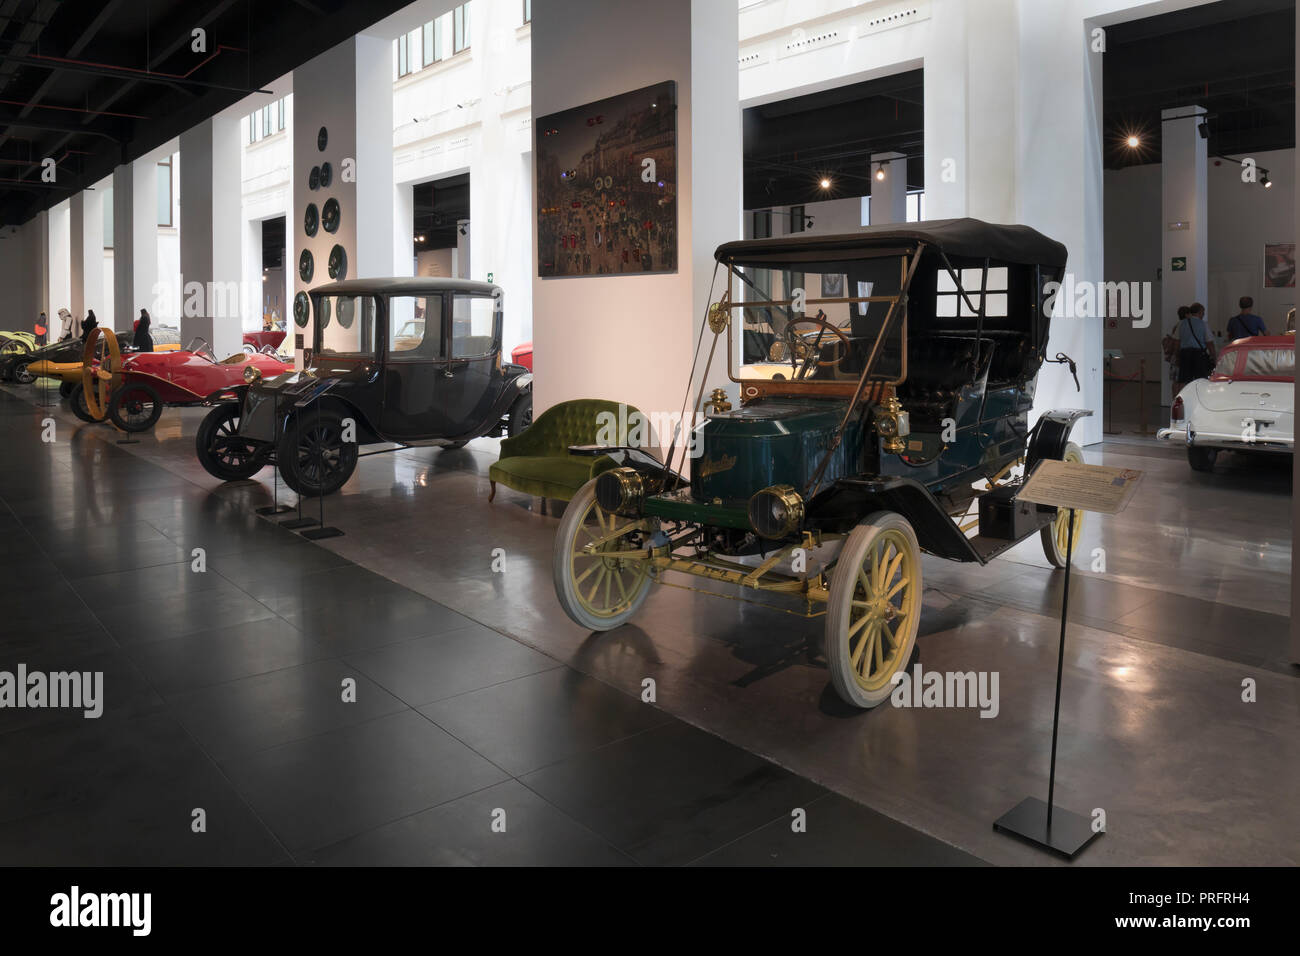 Museo Automovilistico y de la Moda, Malaga, Malaga Province, Spain.  Automobile and Fashion Museum.  The vehicle in the foreground is a Stanley Steame - Stock Image